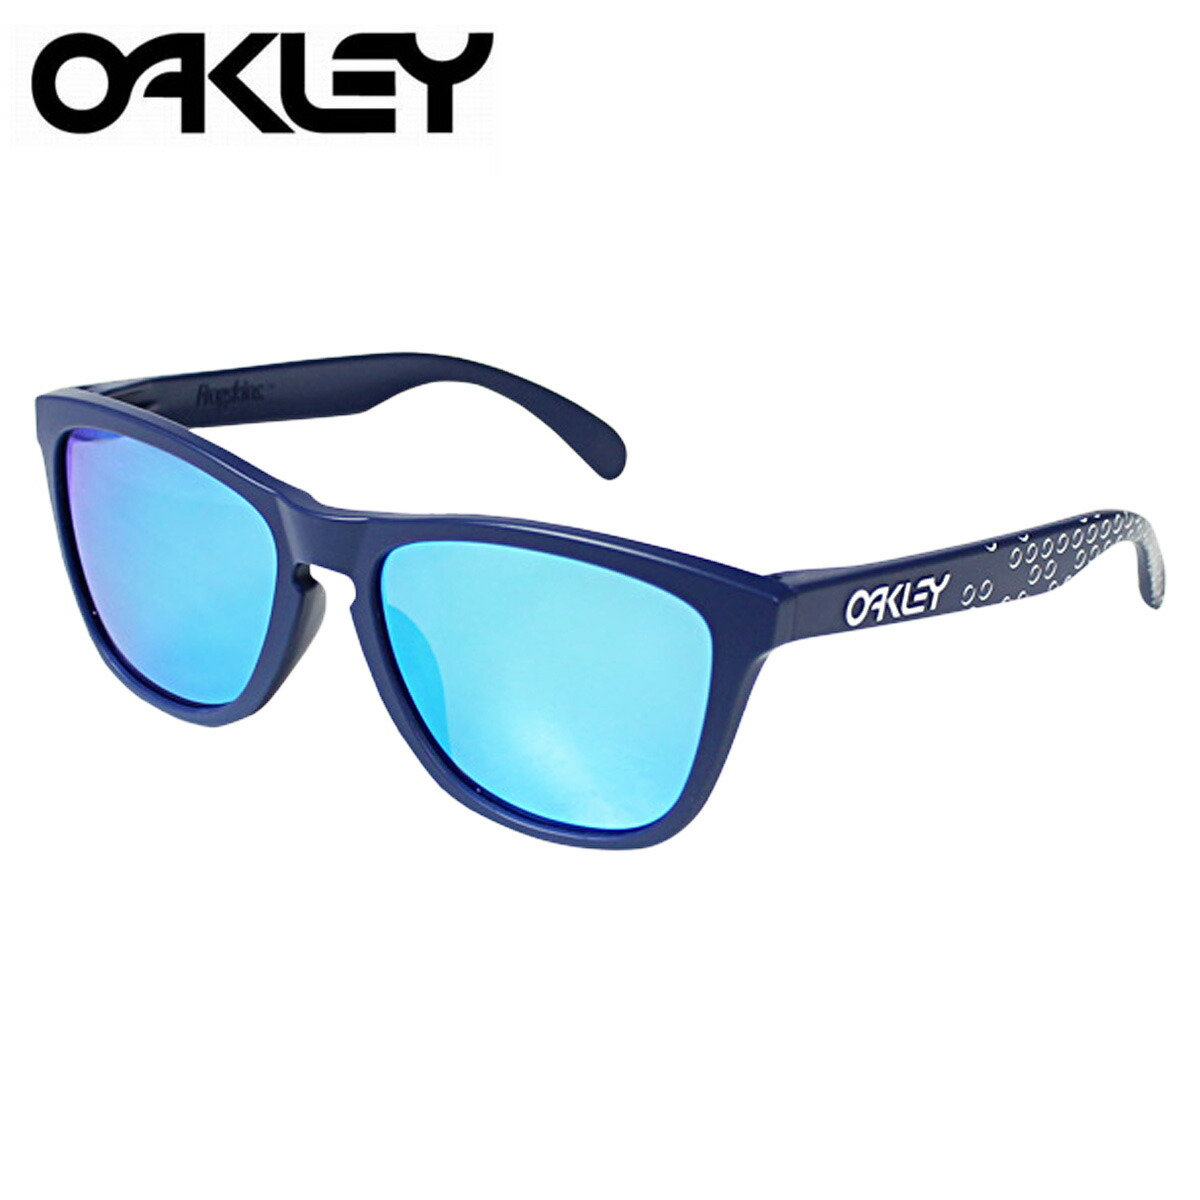 Oakley Blue Sunglasses  sugar online rakuten global market oakley oakley